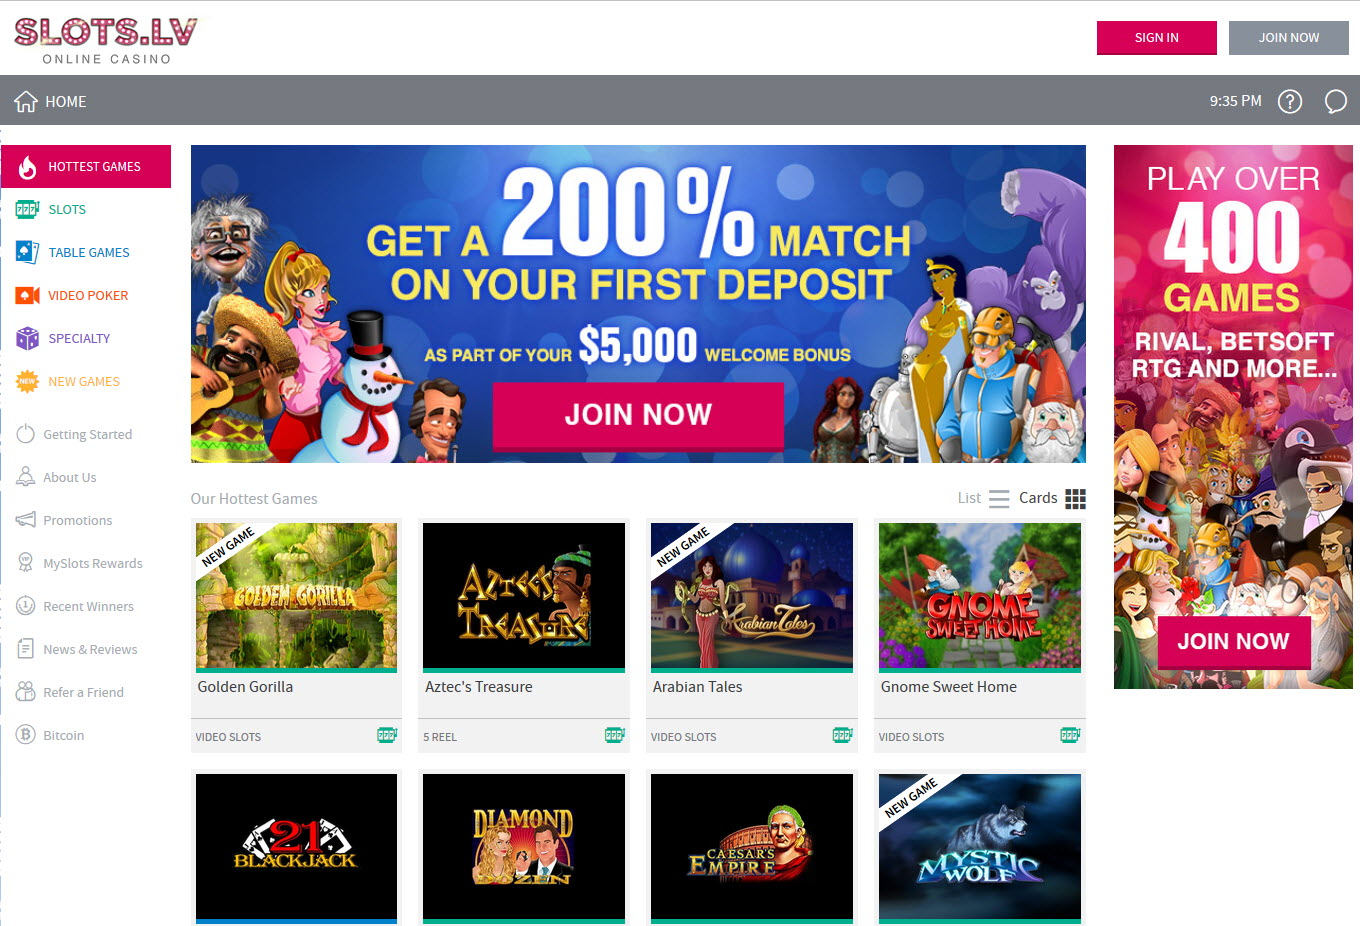 Next Casino Review – Get a €200 Deposit Bonus